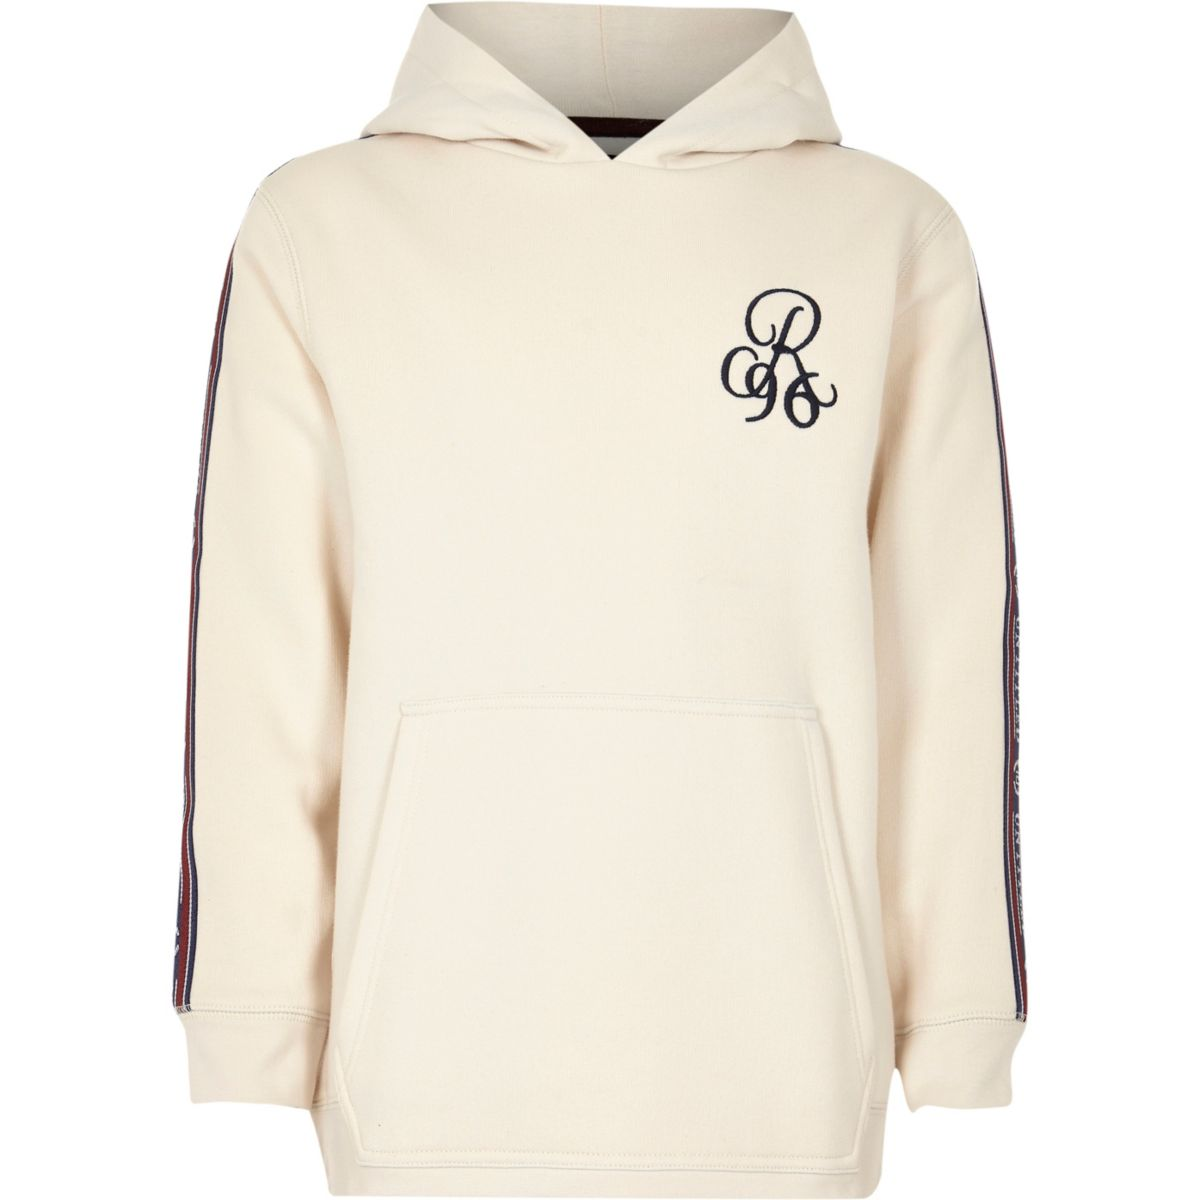 Boys stone 'R96' embroidered tape side hoodie